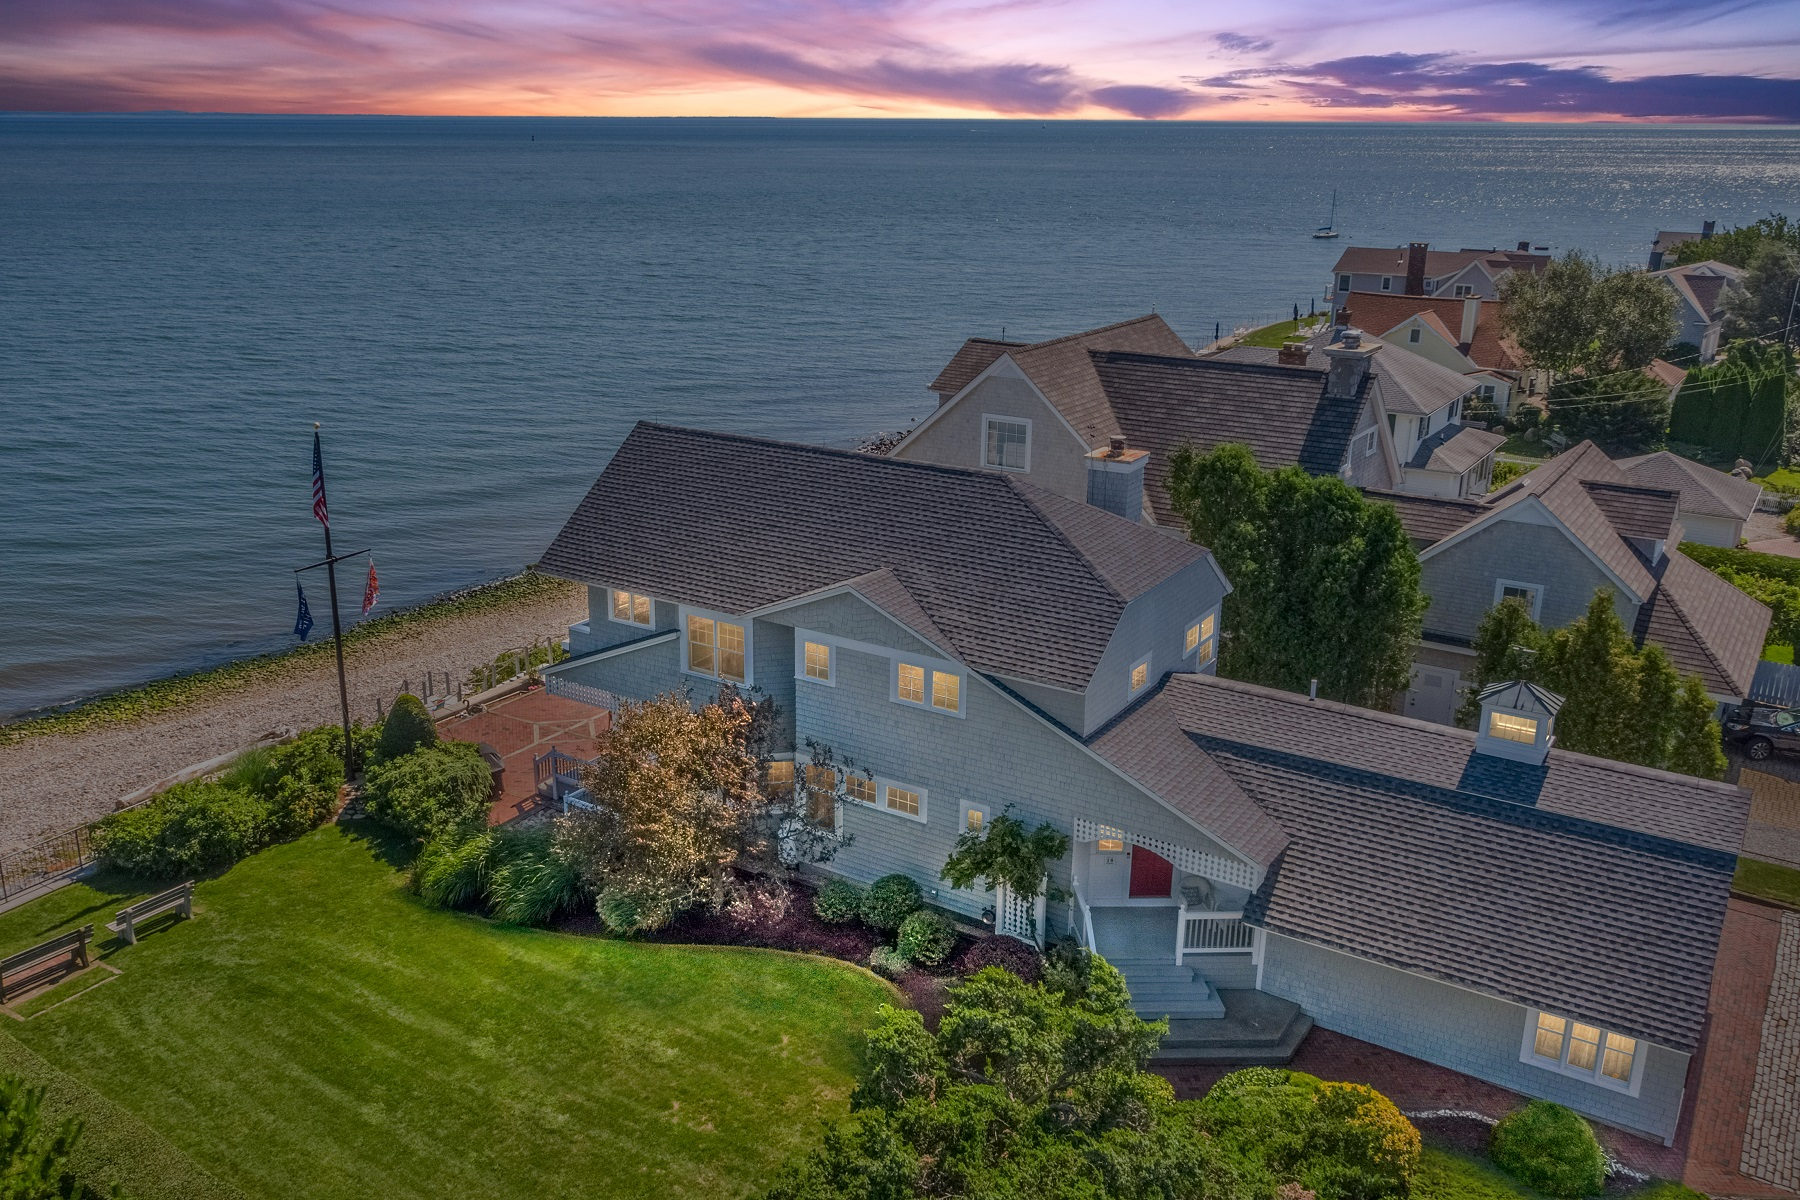 Single Family Homes for Sale at Direct Waterfront - Pure Paradise 18 Sea Lane, Old Saybrook, Connecticut 06475 United States